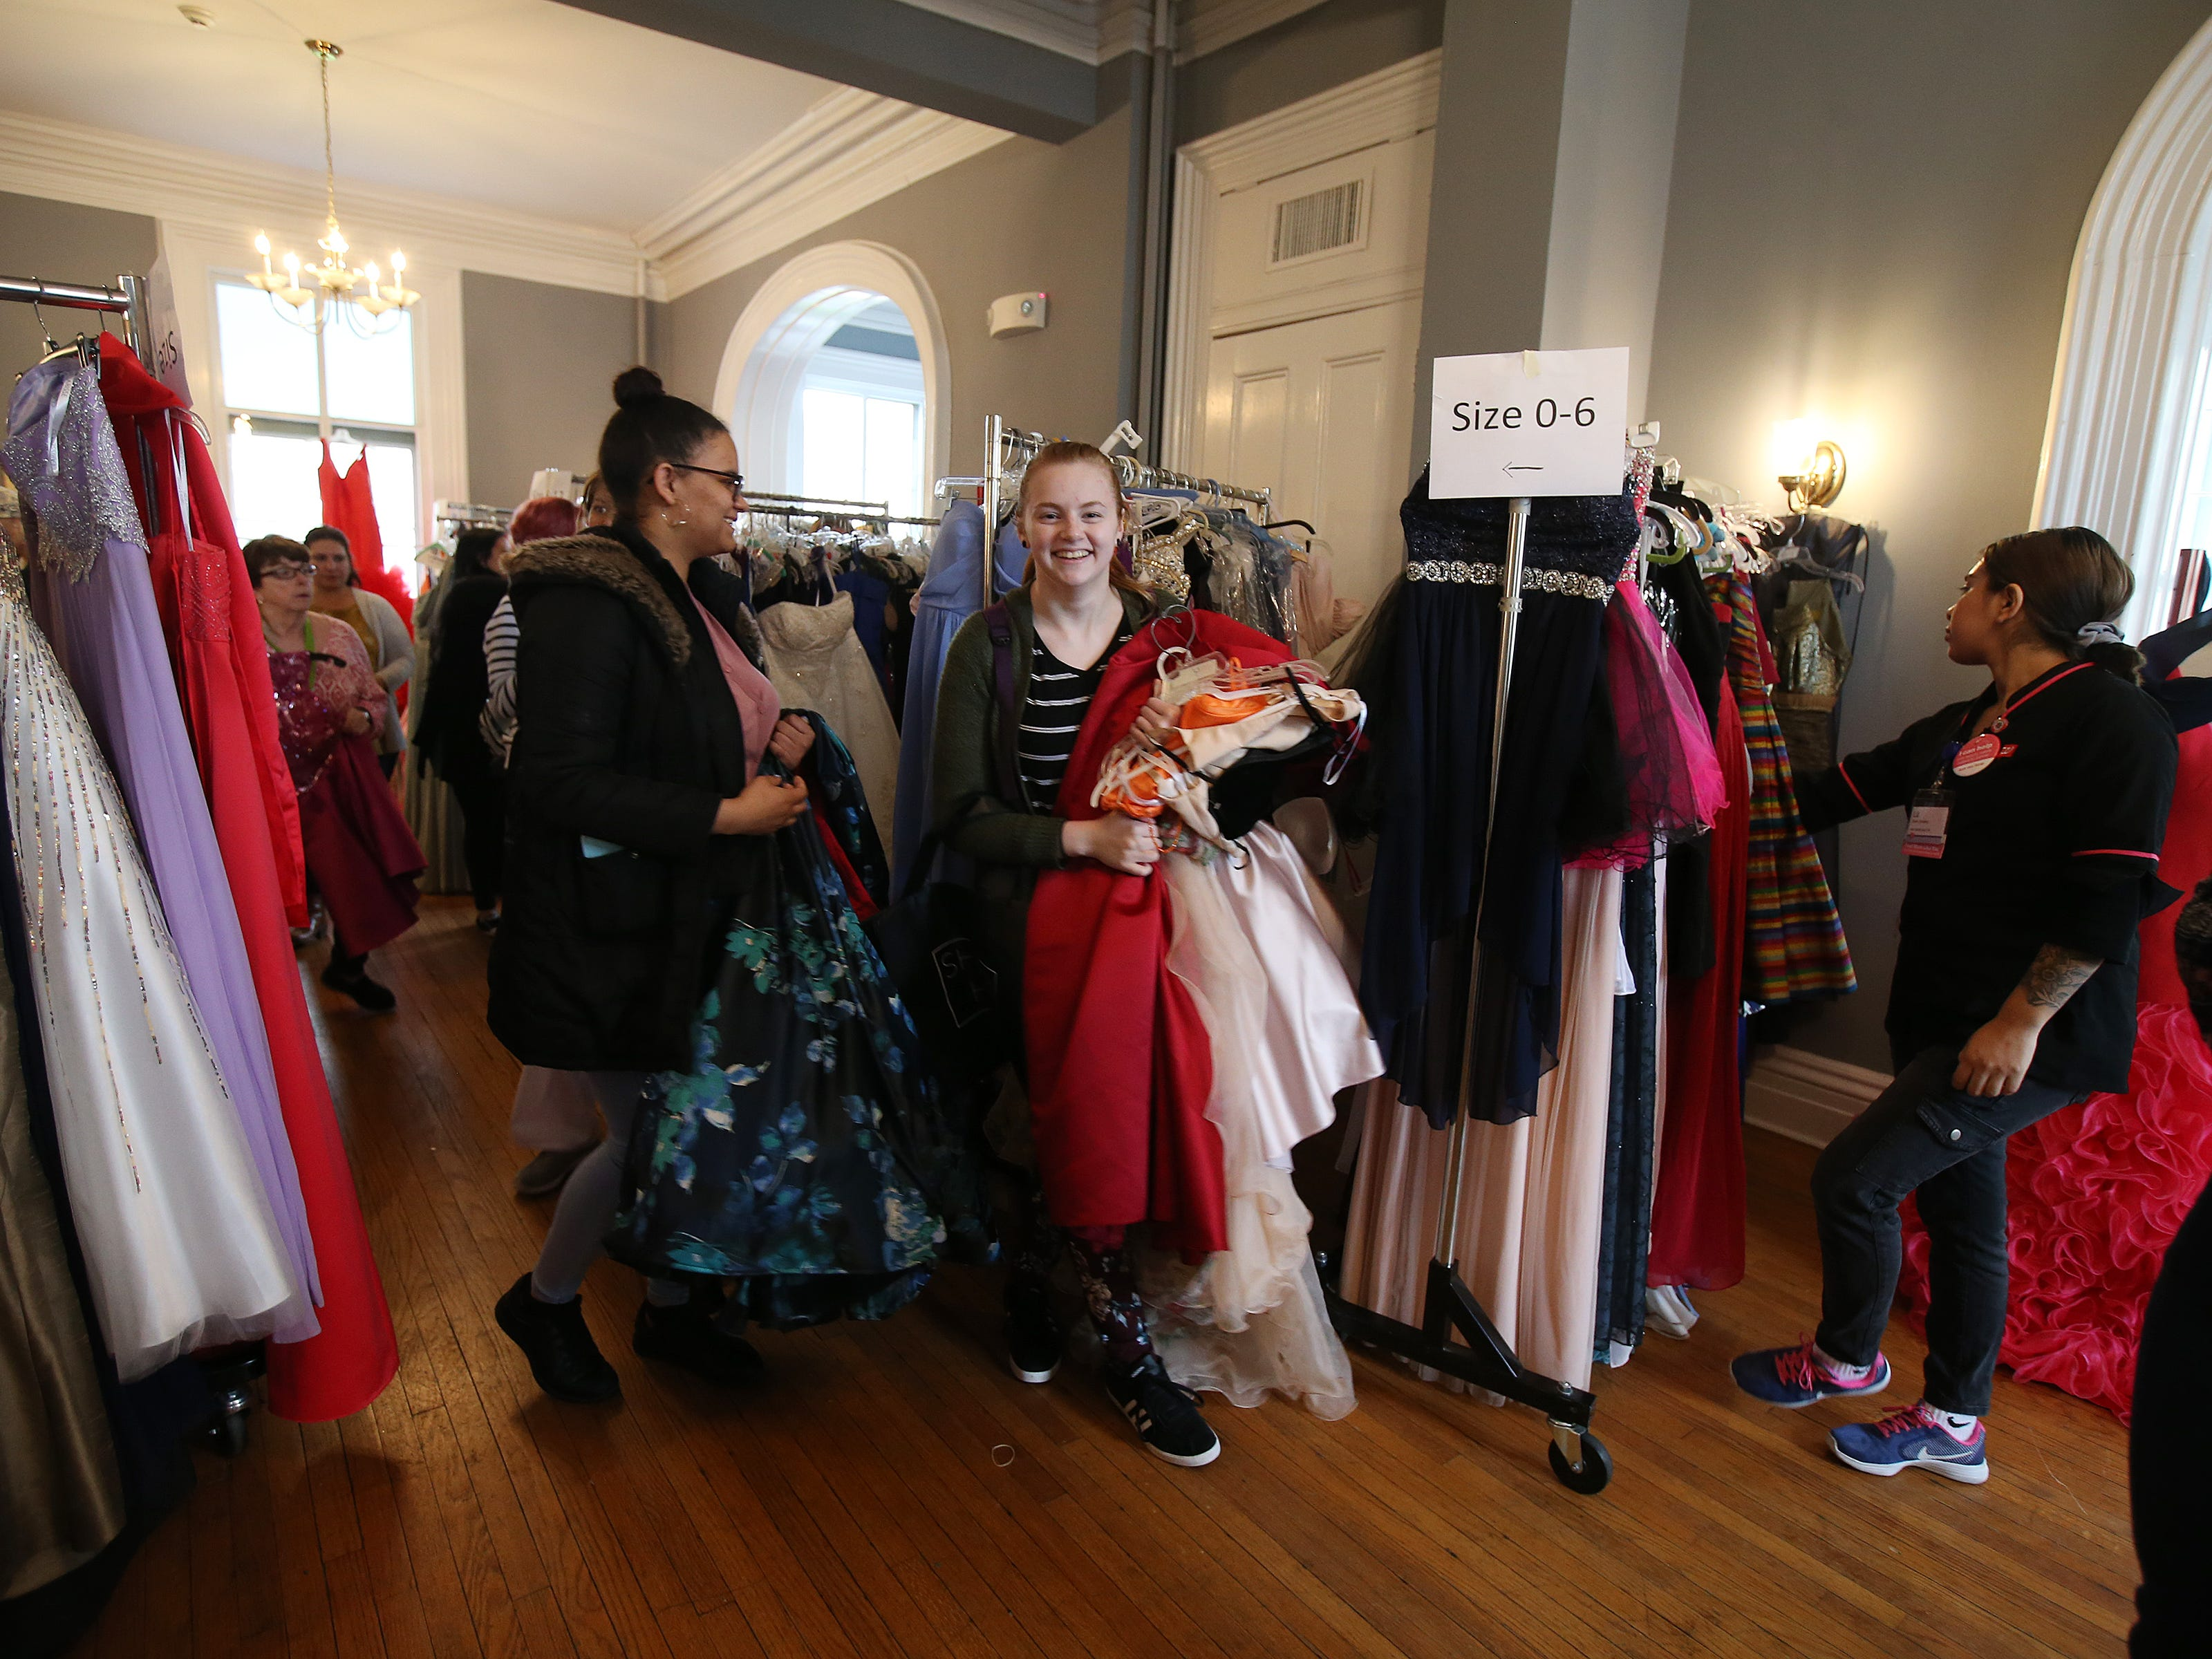 Abril Mendoza, 17, of Manahawkin and Emily Maldonado, 18, of Manahawkin search for the perfect prom dress during the Lunch Break's 4th Annual Prom Giveaway Event at the Woman's Club of Red Bank in Red Bank, NJ Monday, April 22, 2019.